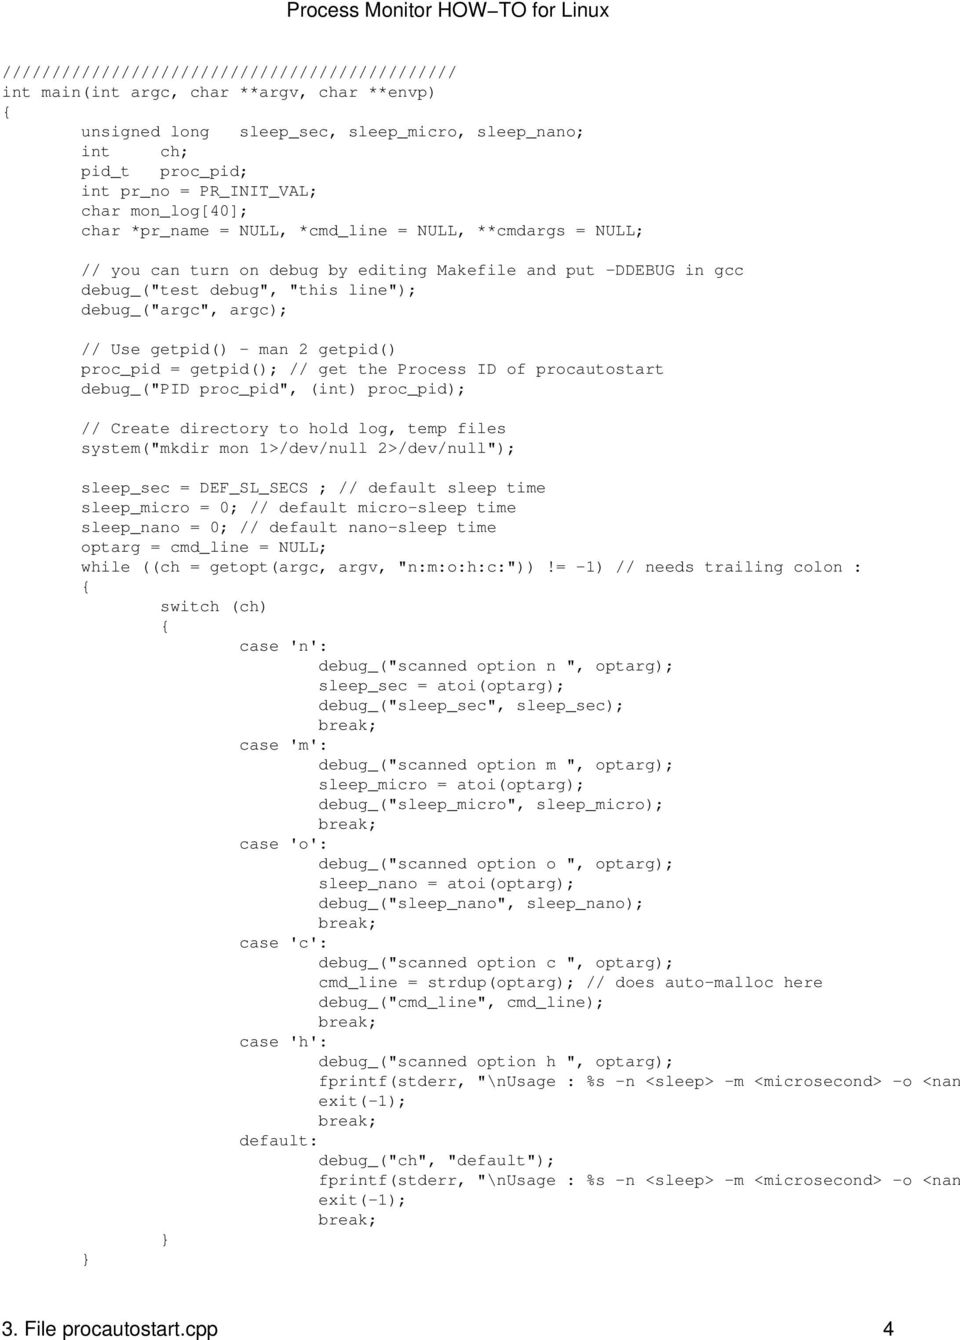 Process Monitor HOW TO for Linux - PDF